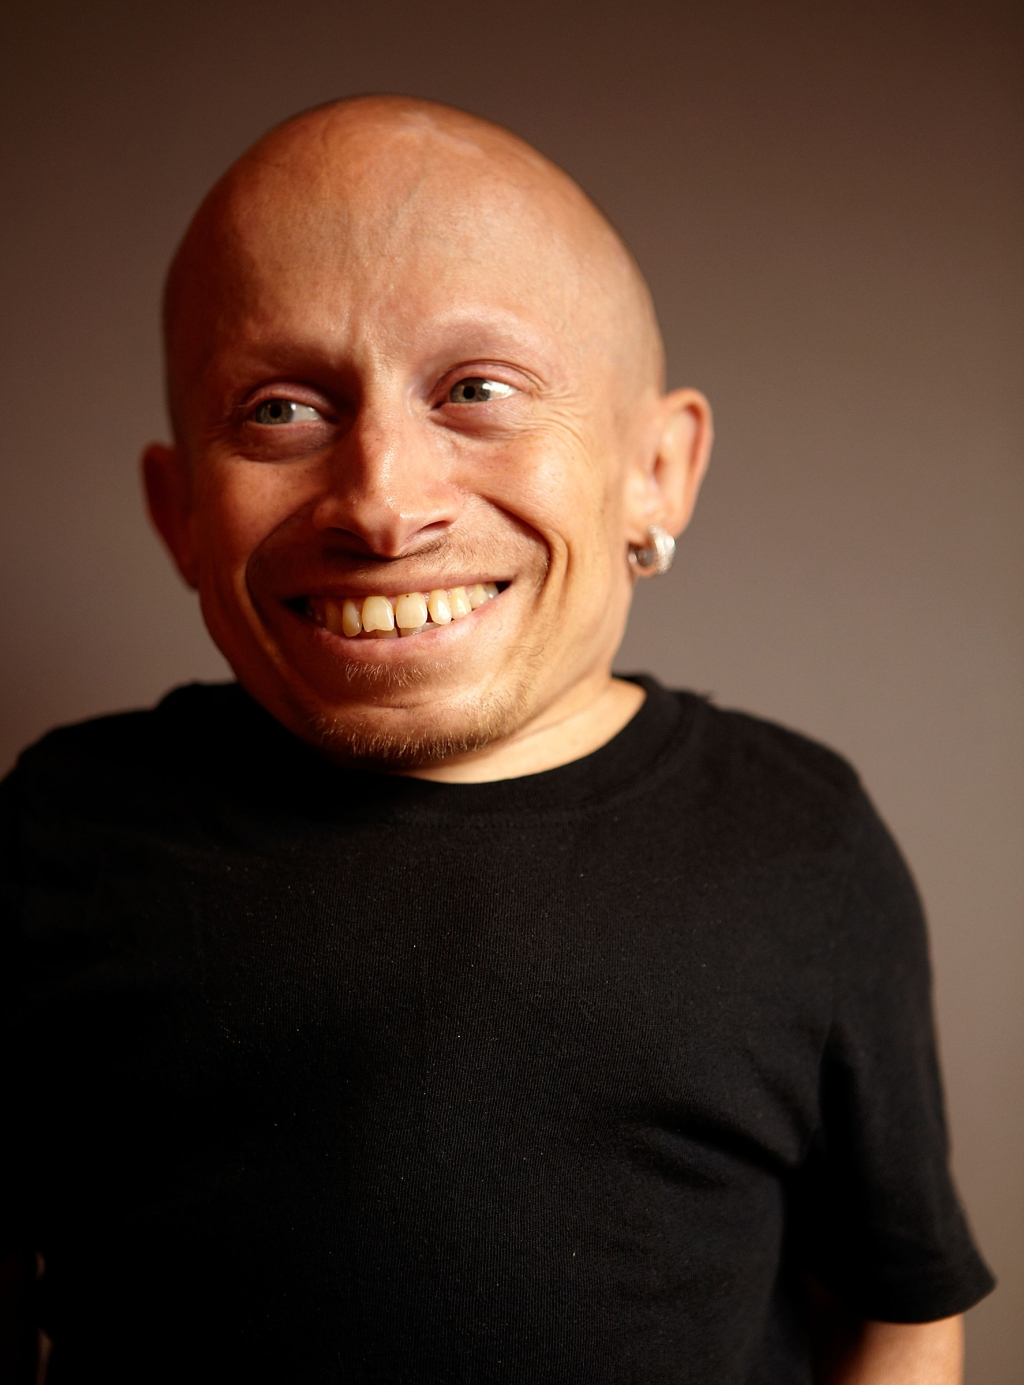 Verne Troyer, the diminutive actor who appeared as Mini-Me in the Austin Powers series, died in April at the age of 49.